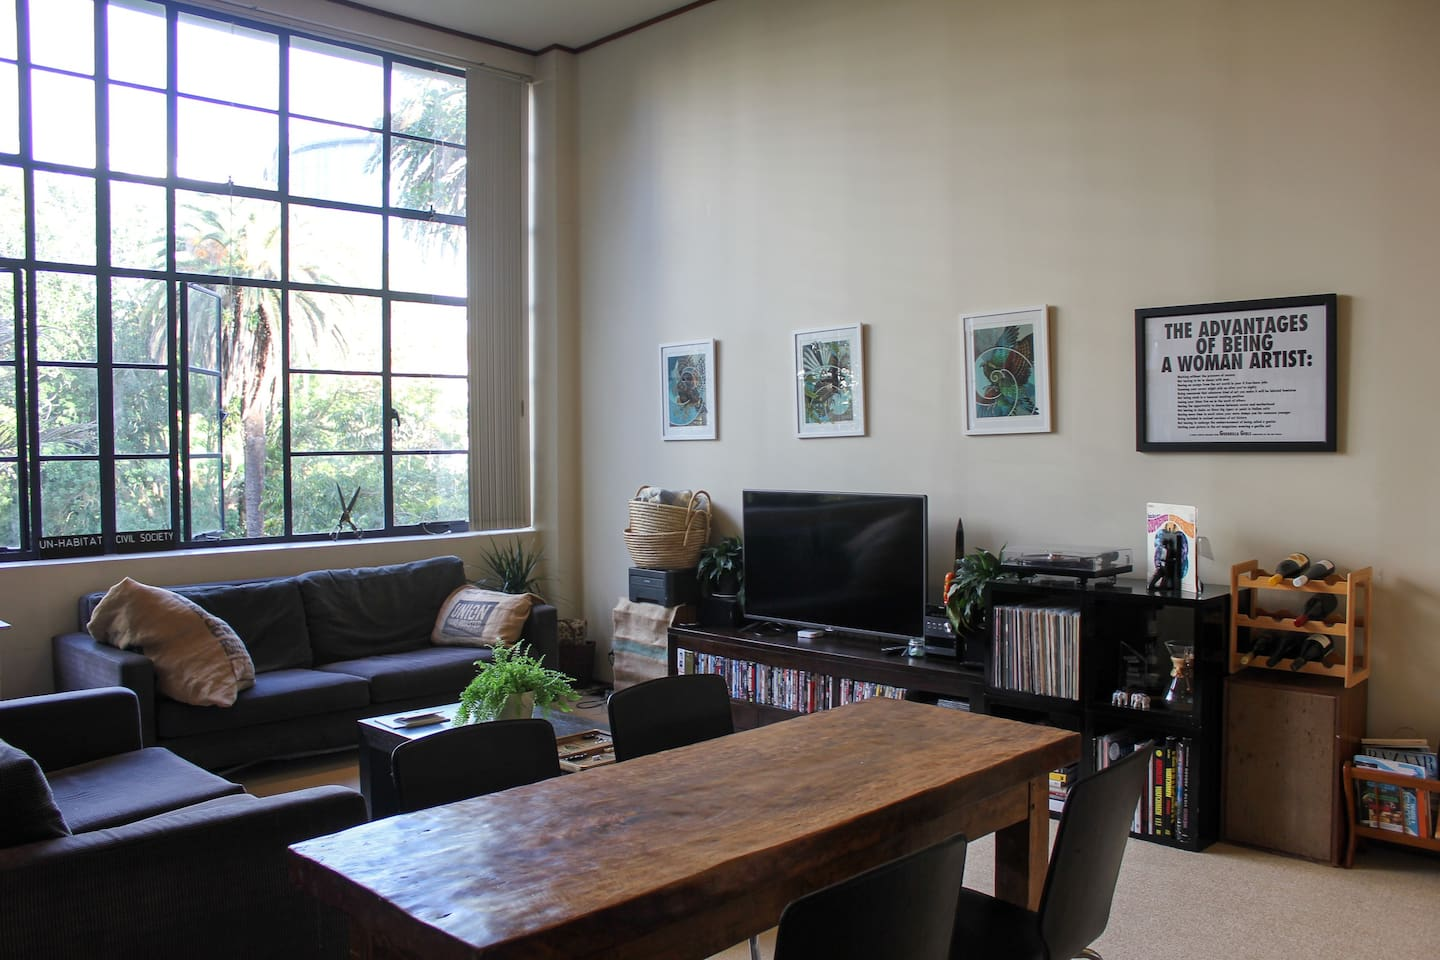 Our living room with views over Myers Park.  You're welcome to use our TV and watch DVDs, and you can use the record player too - just please ask us to show you how first! Our dining table is from a cafe that recently closed down after nearly 20 years - it was a local institution.